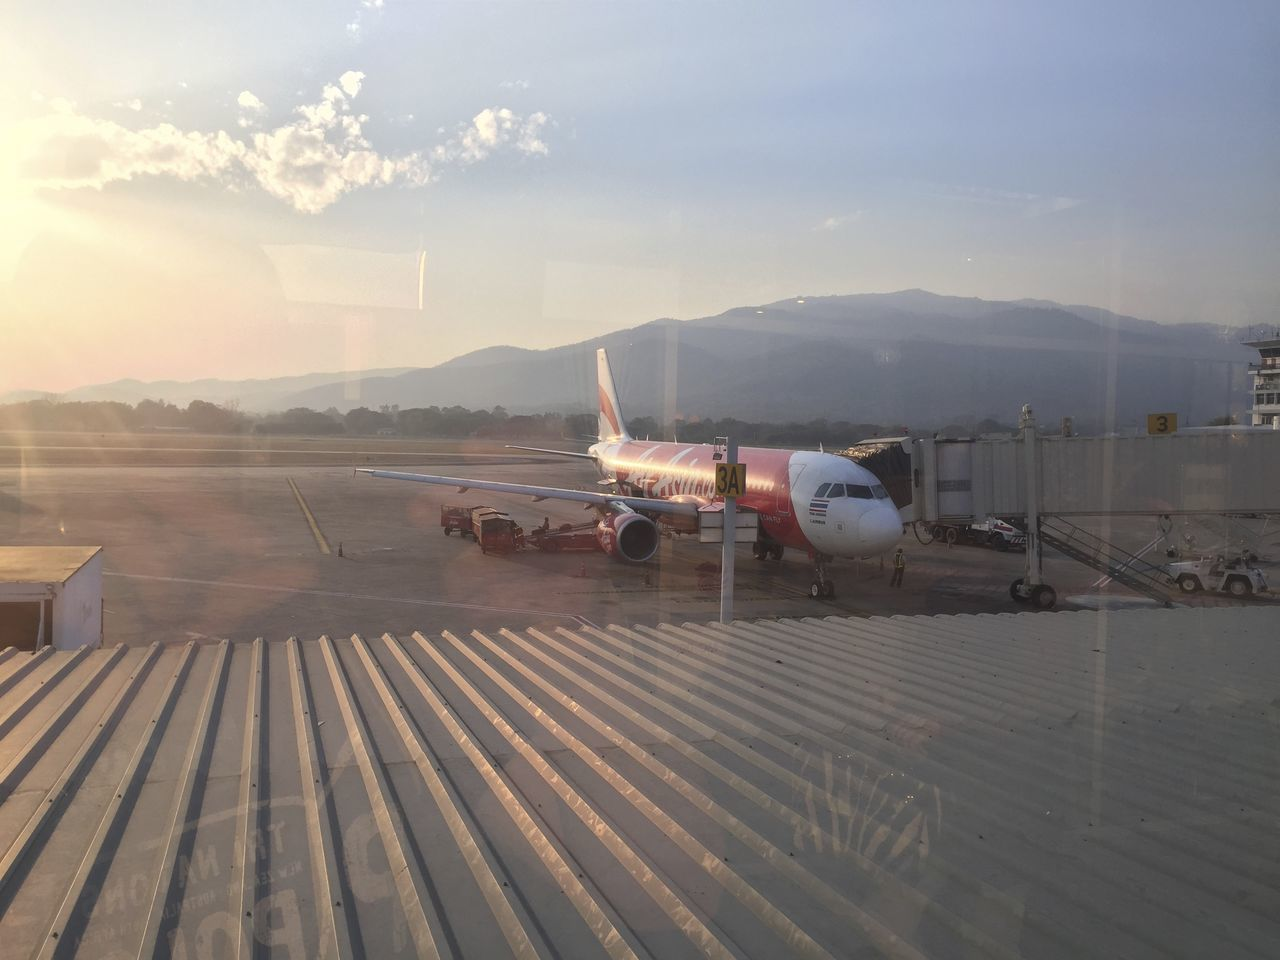 airplane, airport, air vehicle, transportation, airport runway, mode of transport, runway, sky, outdoors, commercial airplane, mountain, sunset, day, no people, airport departure area, flying, nature, airplane wing